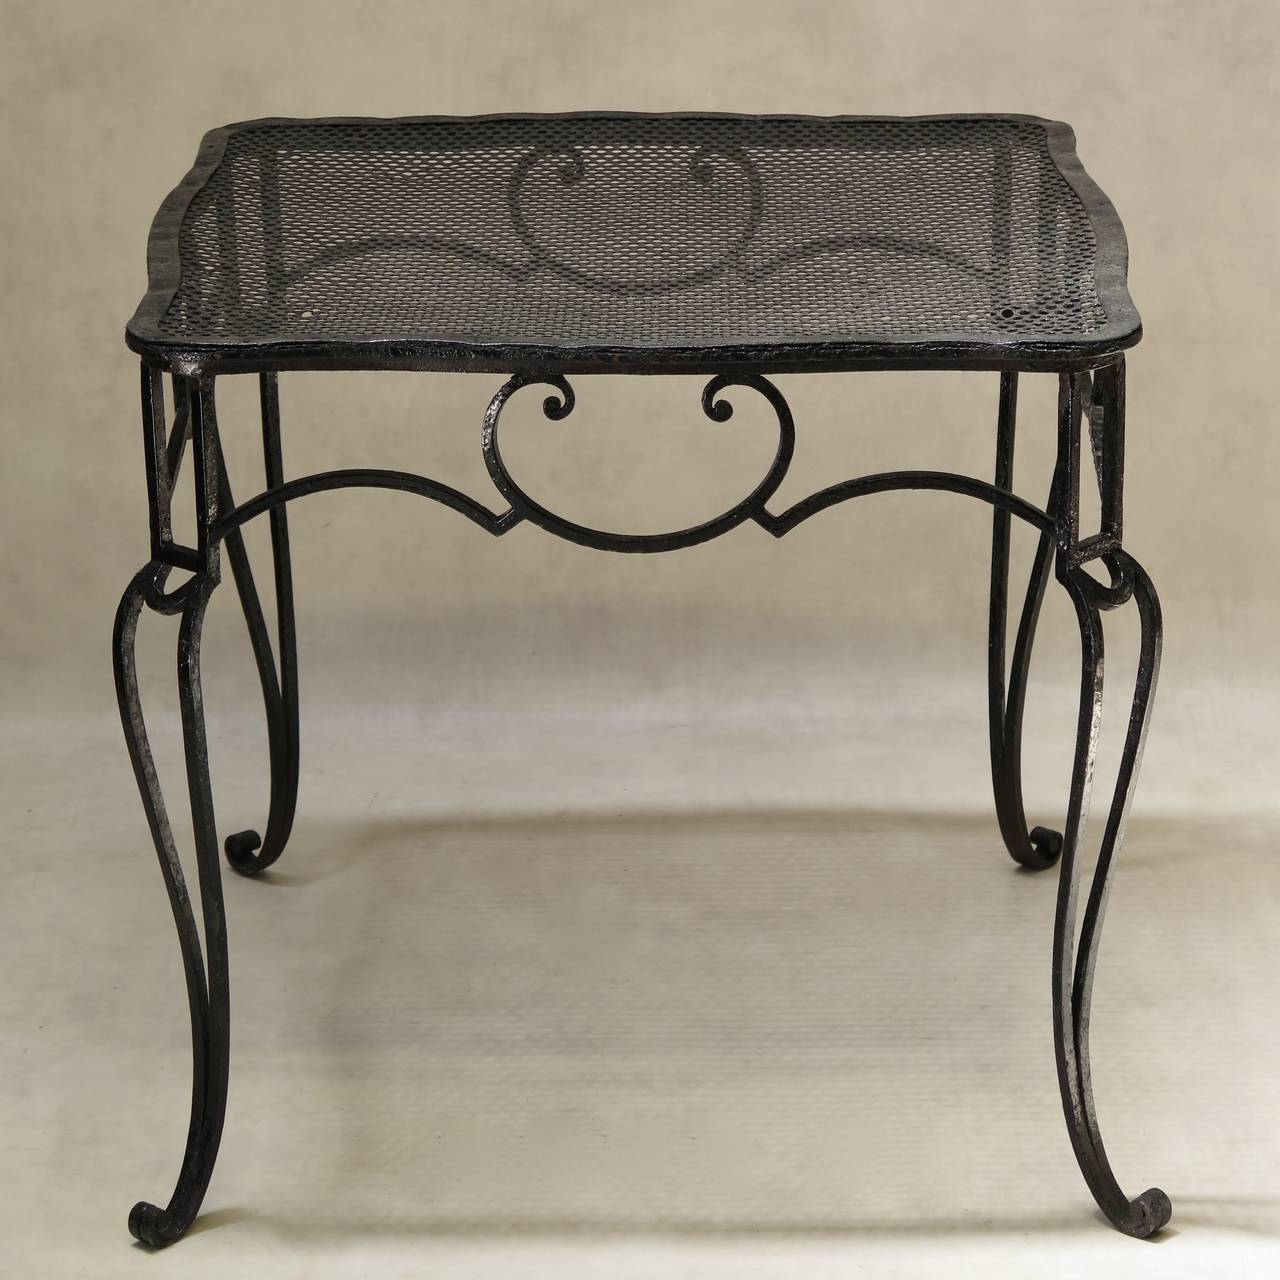 Art deco baroque wrought iron table by j c moreux france